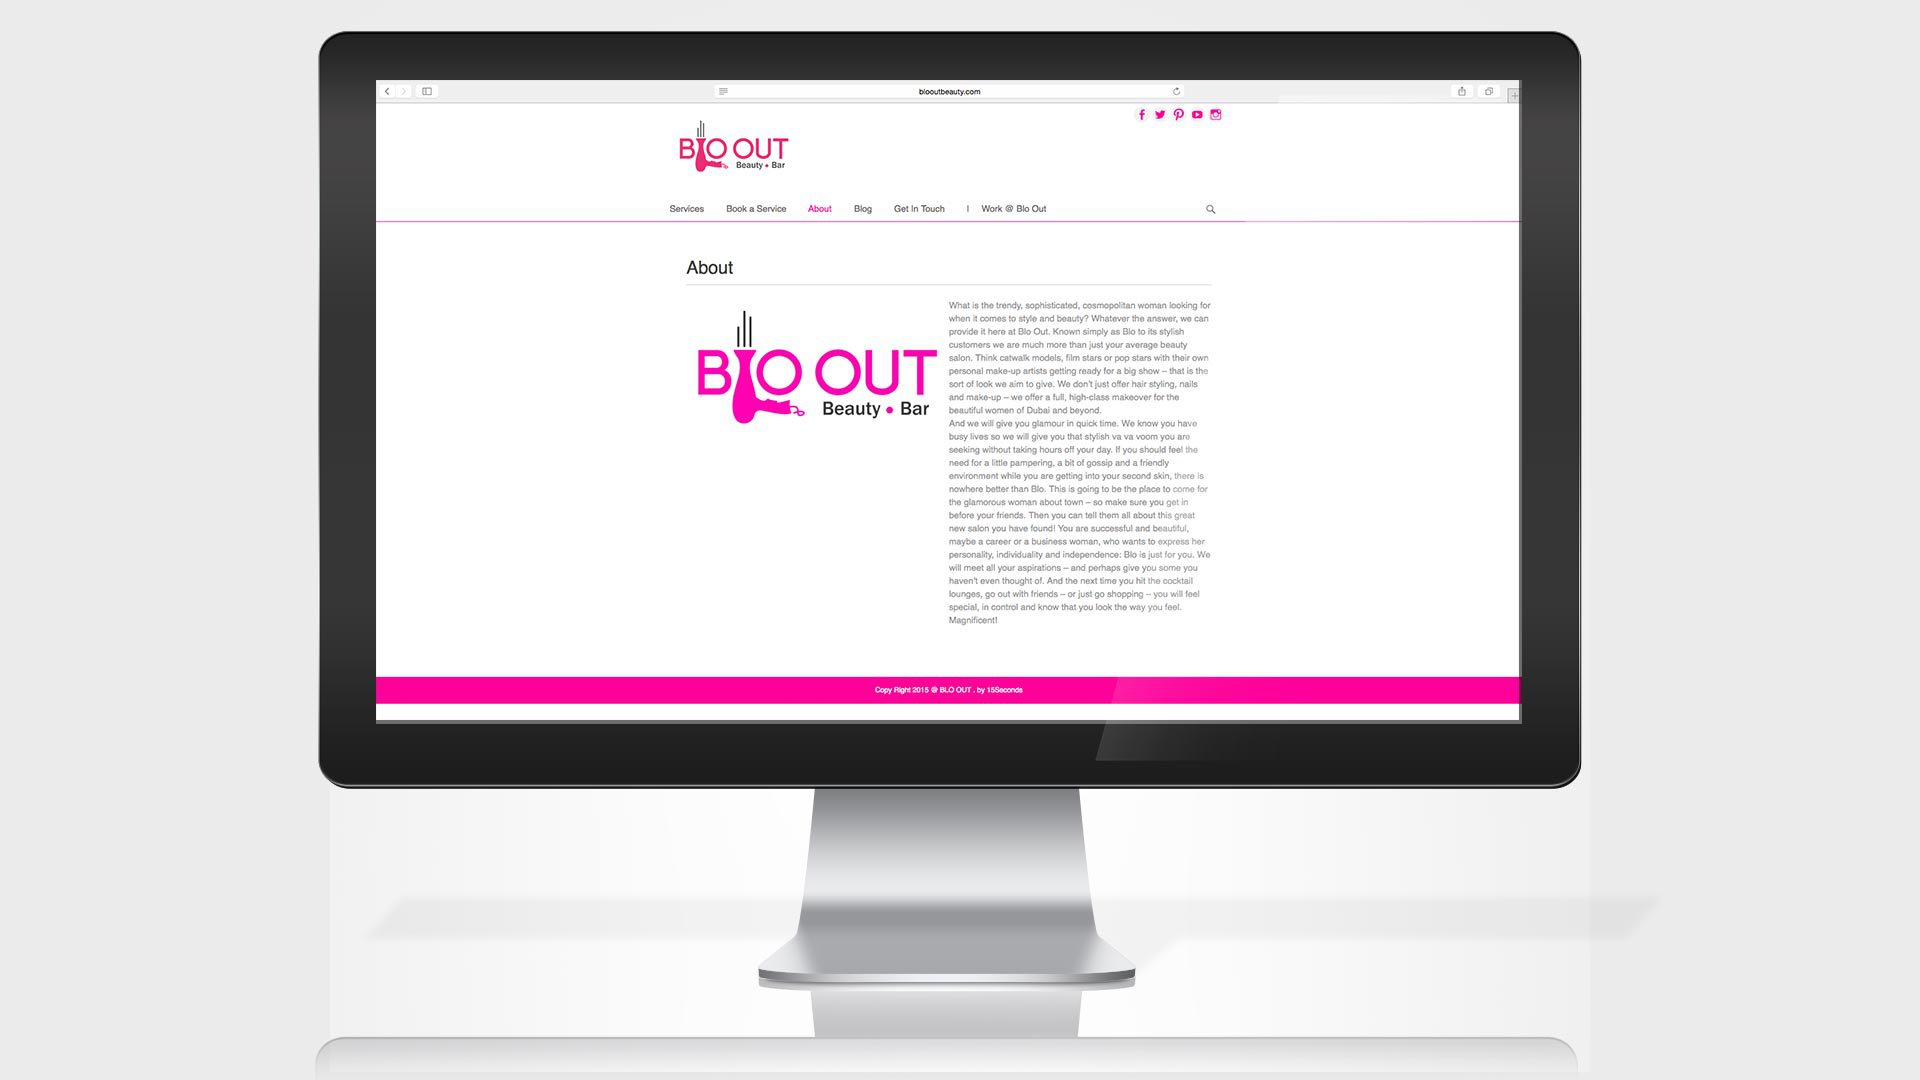 blo-out-beauty-bar-website-about-page